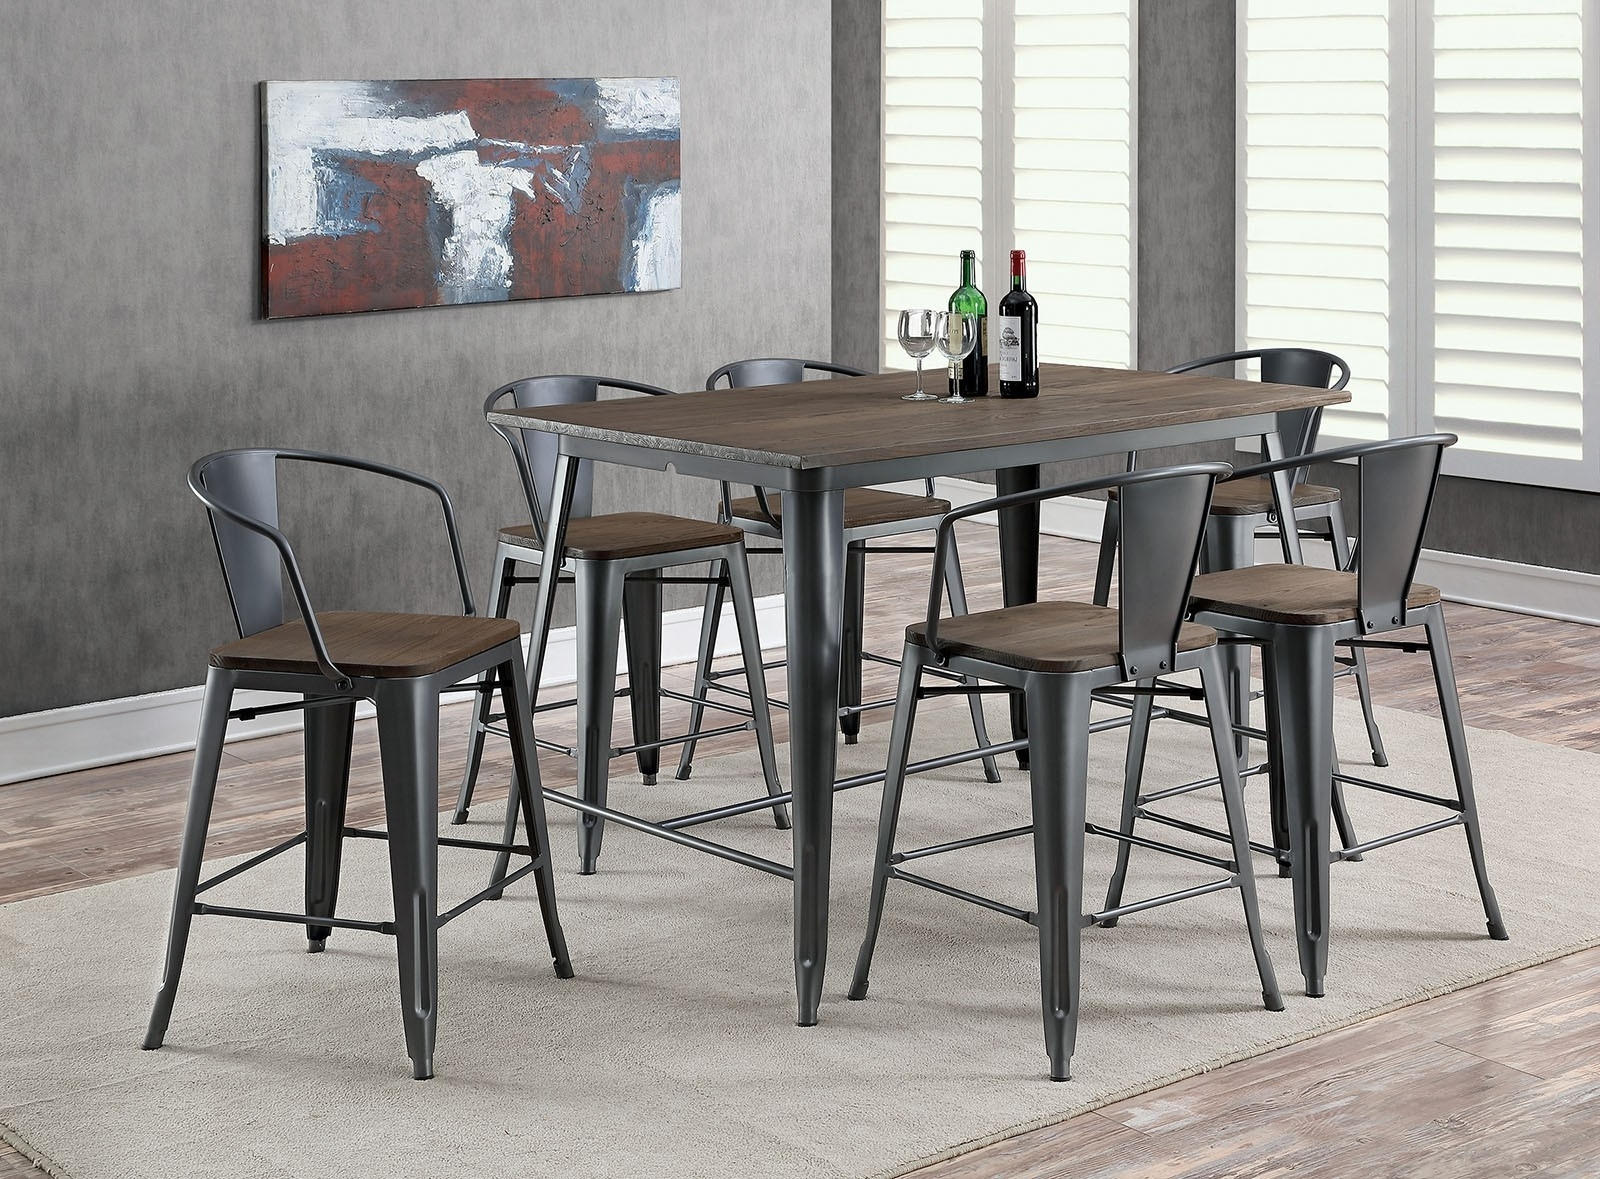 Lela Industrial Style Gray 7Pc Counter Height Dining Table Set W Pertaining To Most Popular Industrial Style Dining Tables (View 10 of 25)